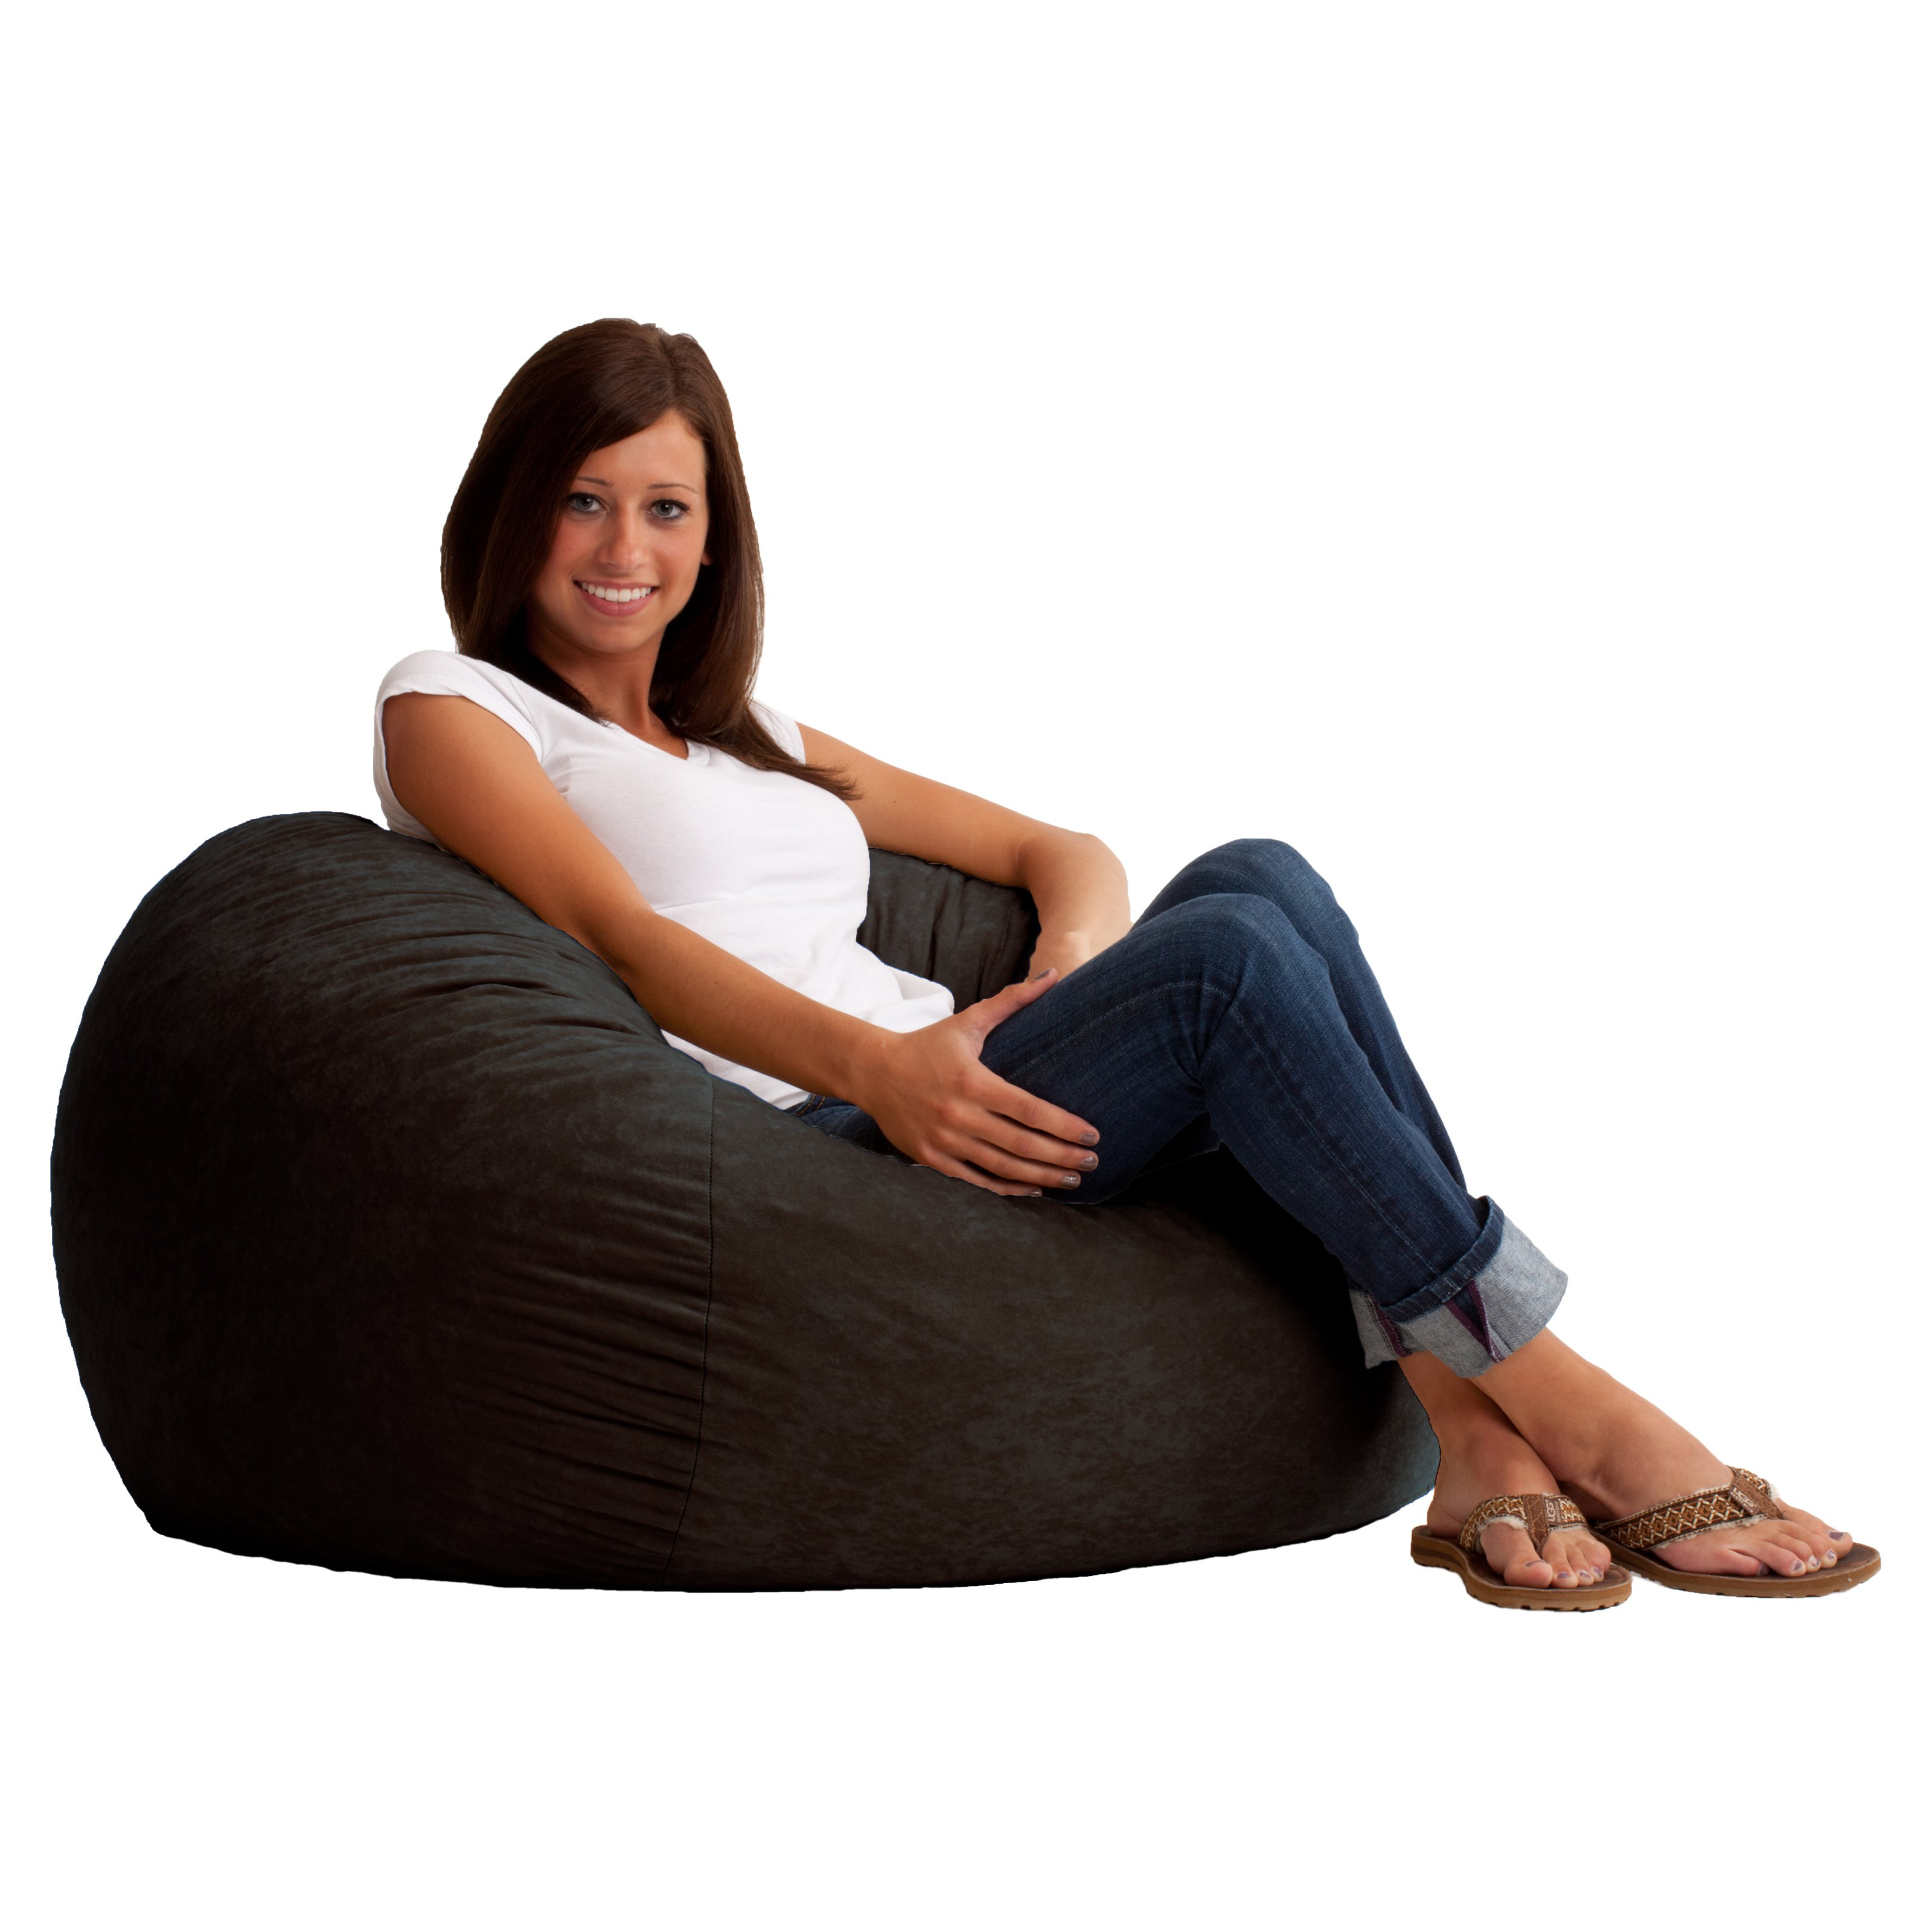 Ordinaire Image Is Loading 3 039 Fuf Comfort Suede Bean Bag Multiple